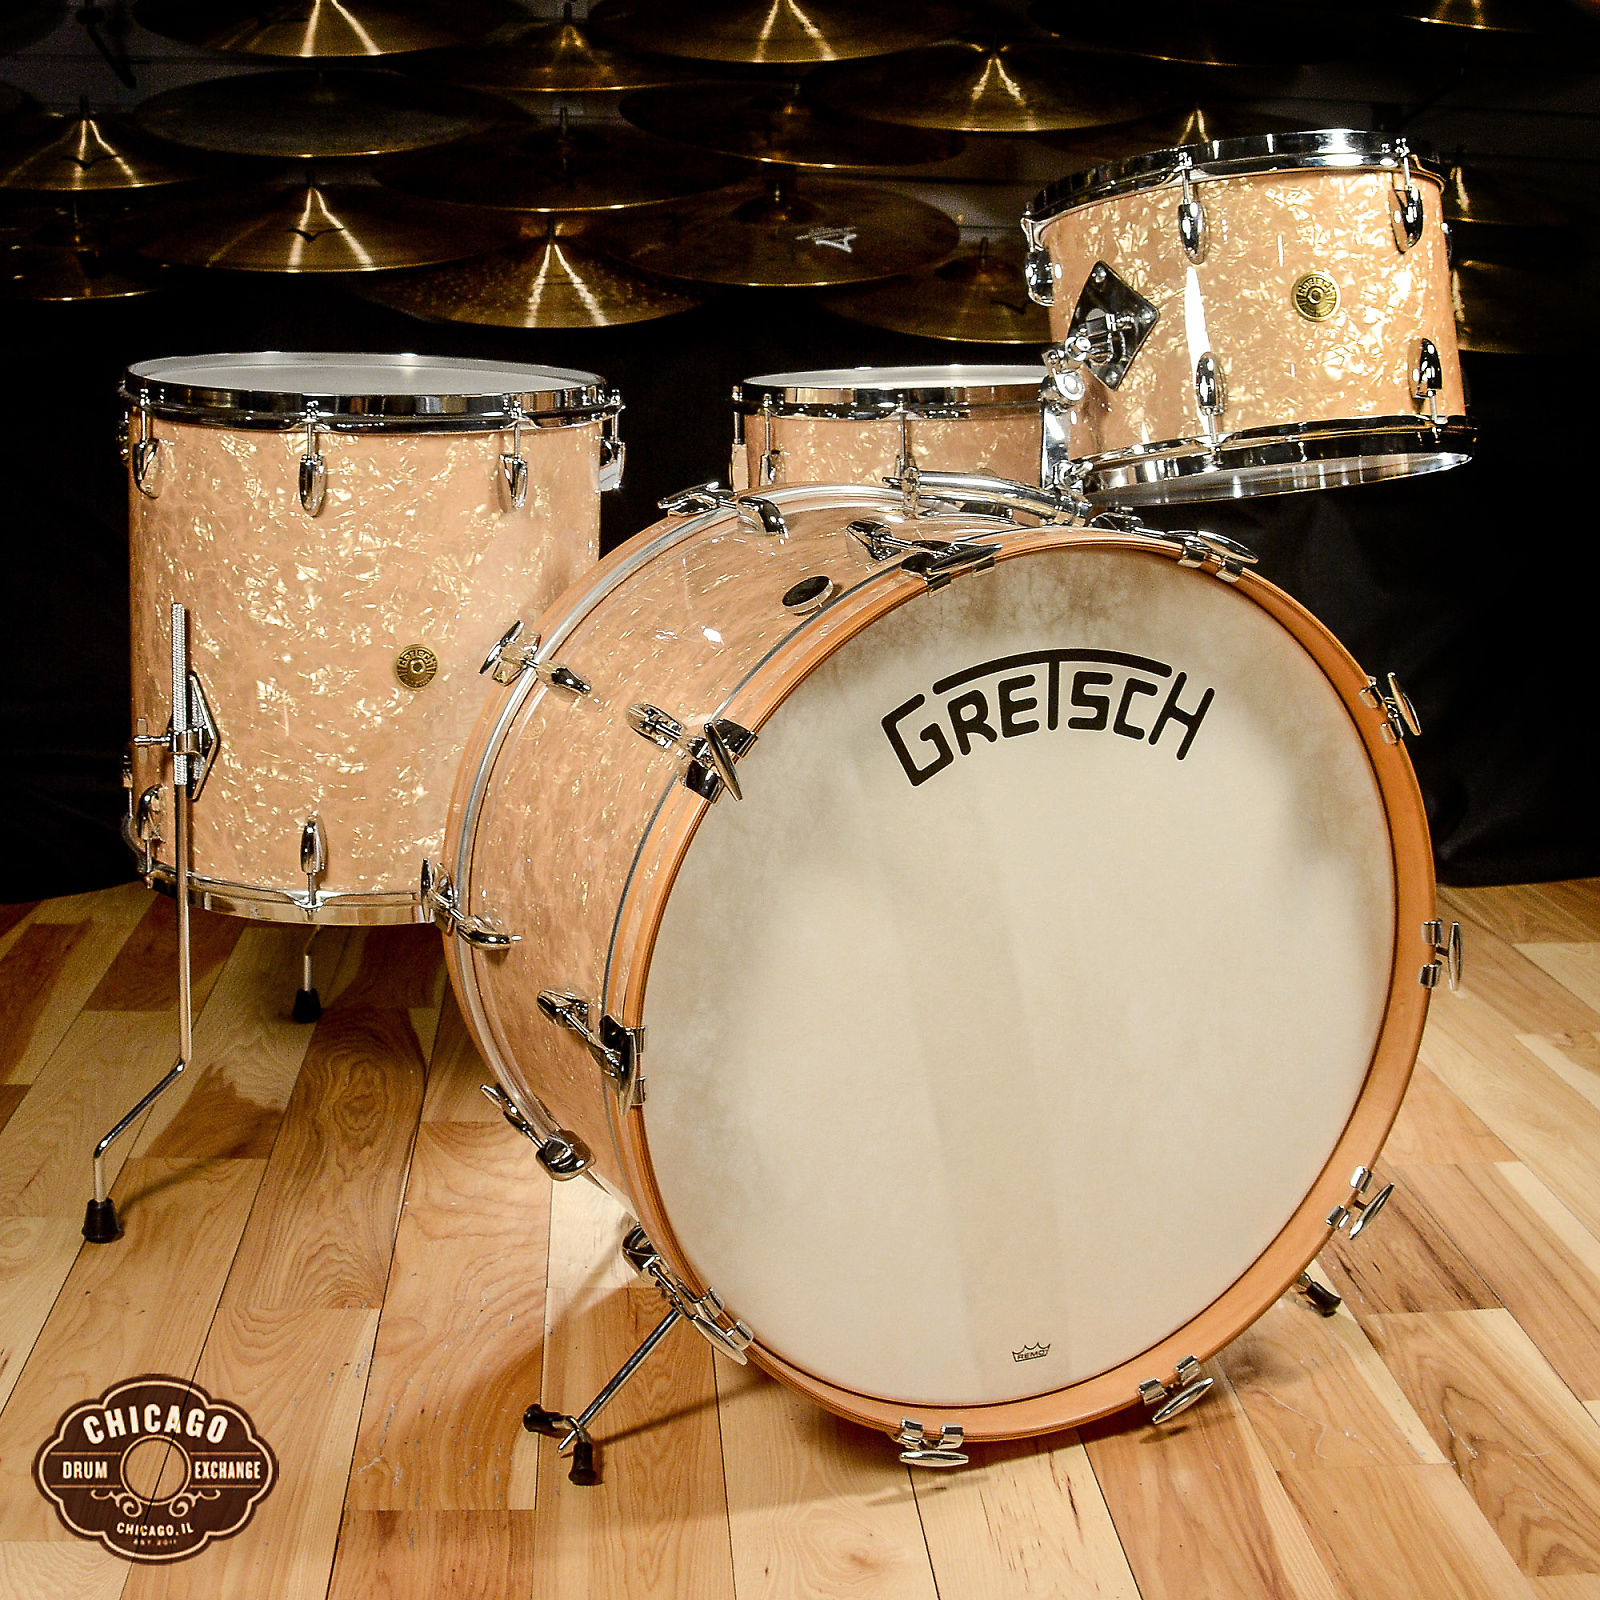 Gretsch Broadkaster 4pc Drum Kit 13/16/24/6 5x14 Bomber Vintage Build  Antique Pearl